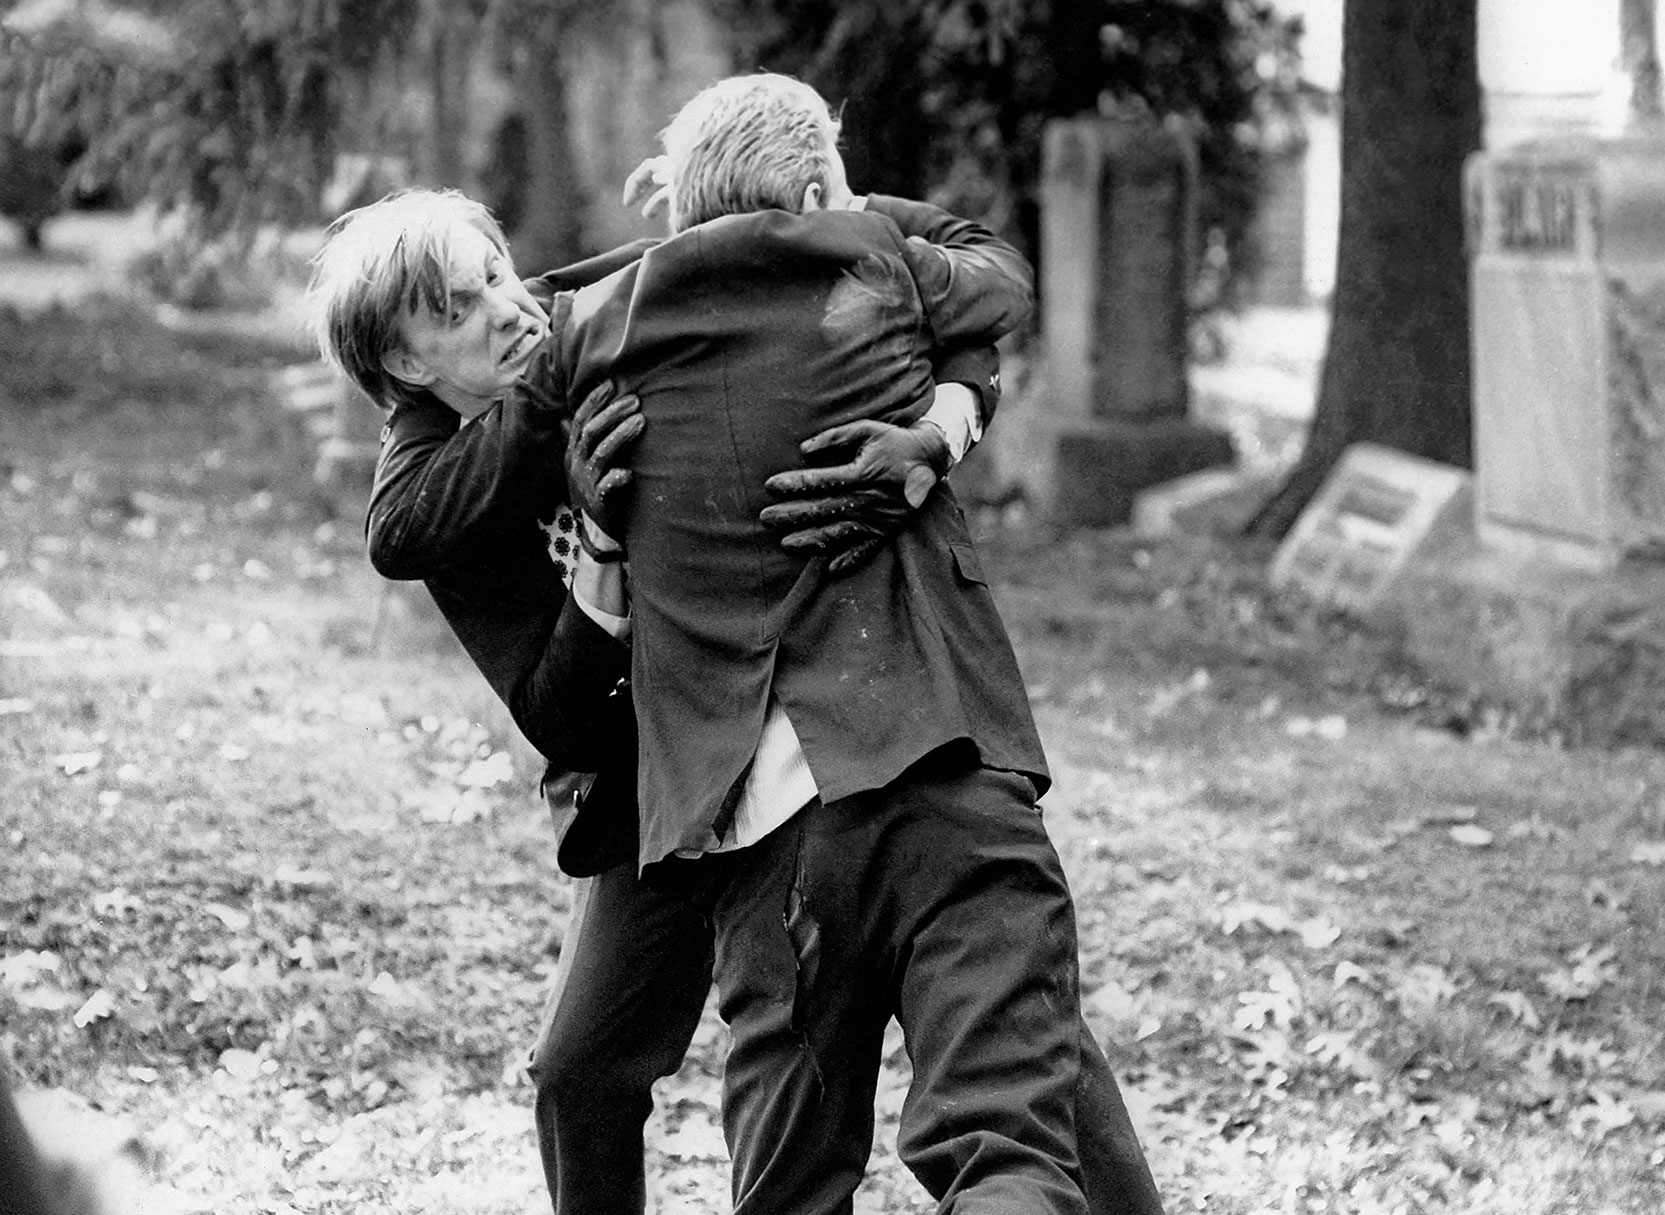 Johnny (Russ Streiner) and an undead Ghoul (Bill Hinzman) fight it out in the Evans City Cemetery. A Scene from Night of the Living Dead. Photo © Image Ten, Inc. All Rights Reserved